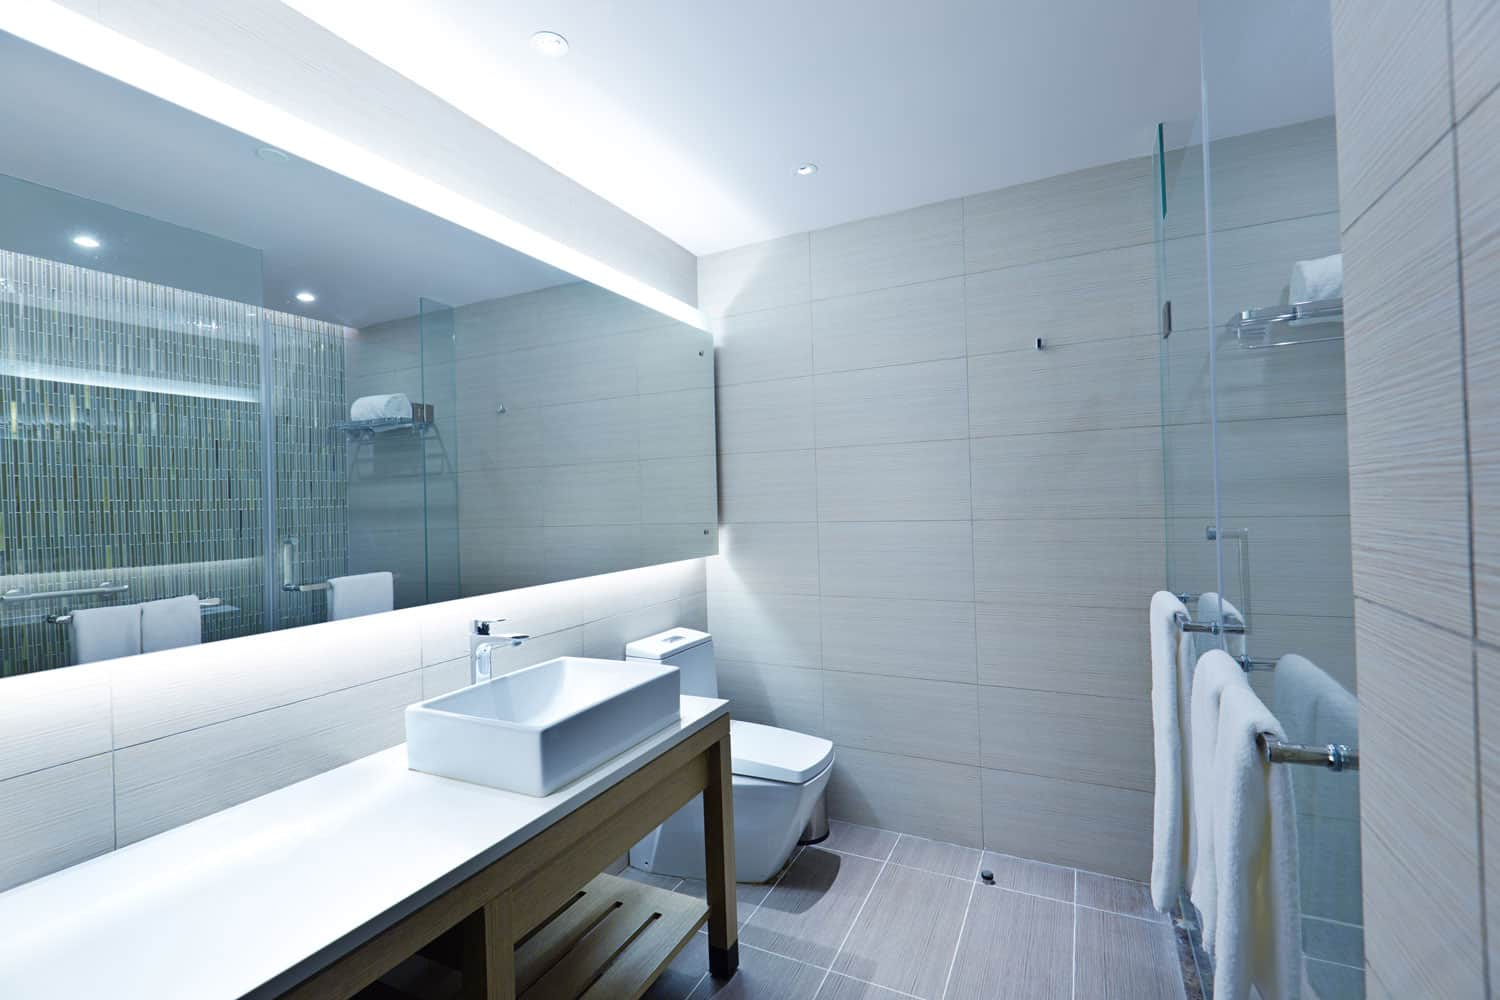 Contemporary interior of a modern bathroom with long span mirror and a minimalst sink and granite countertop